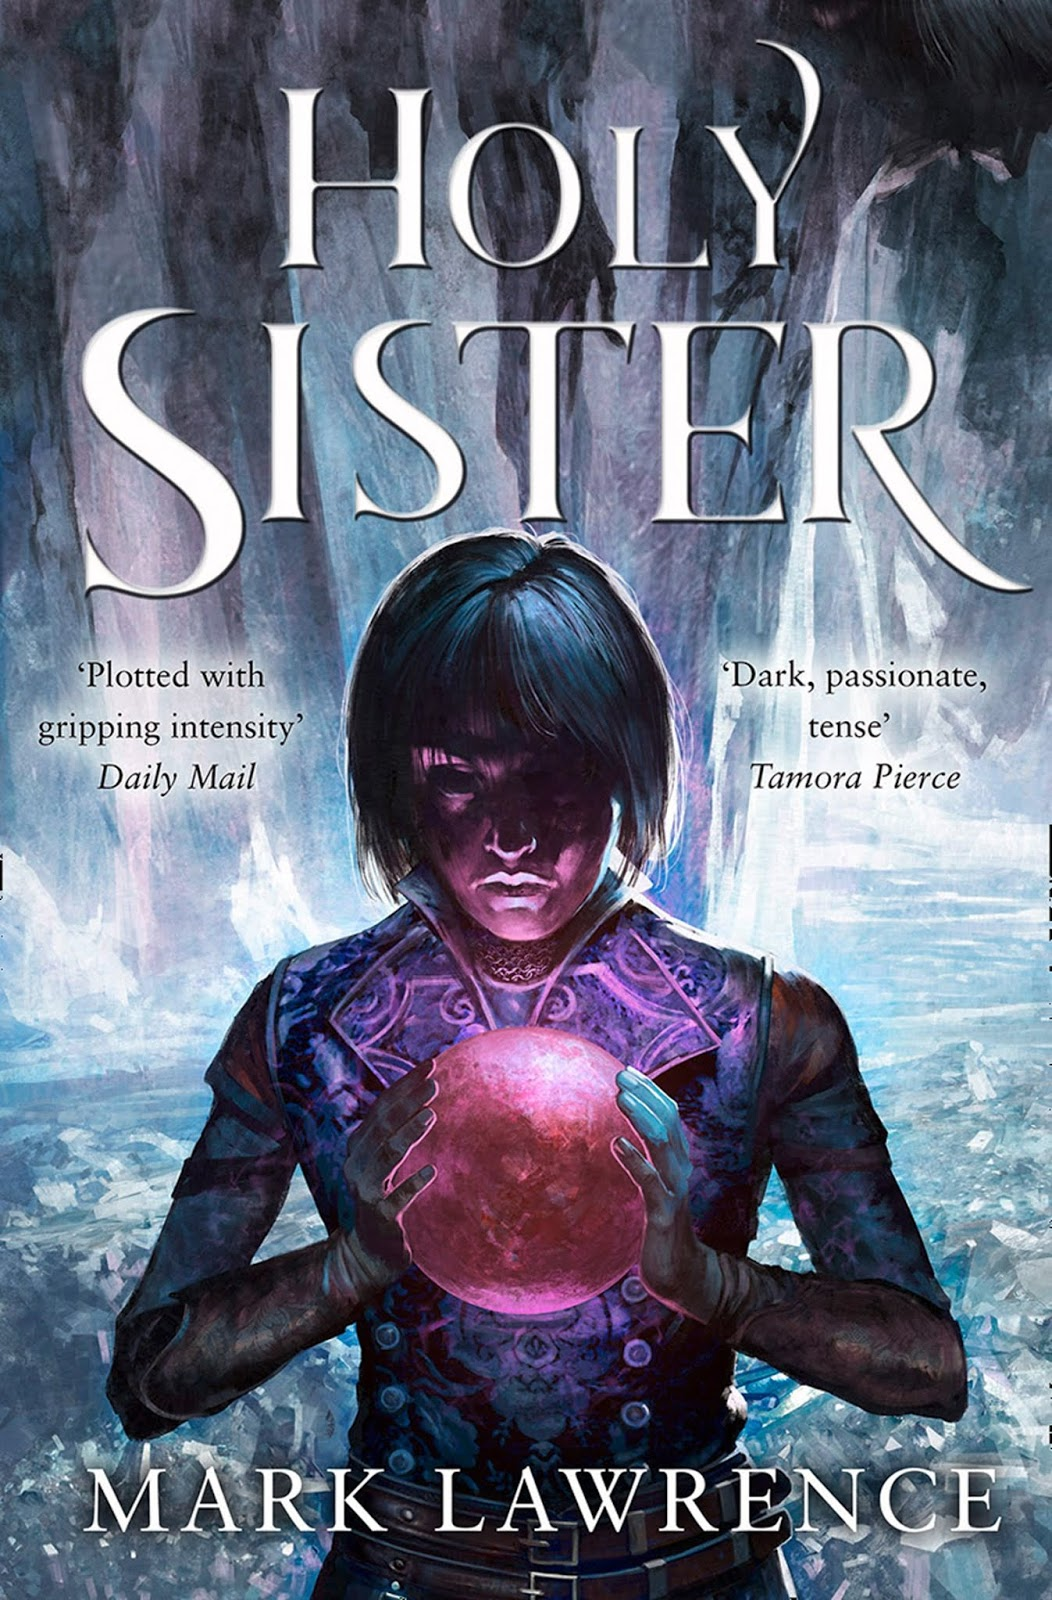 Holy Sister by Mark Lawrence (UK Edition)